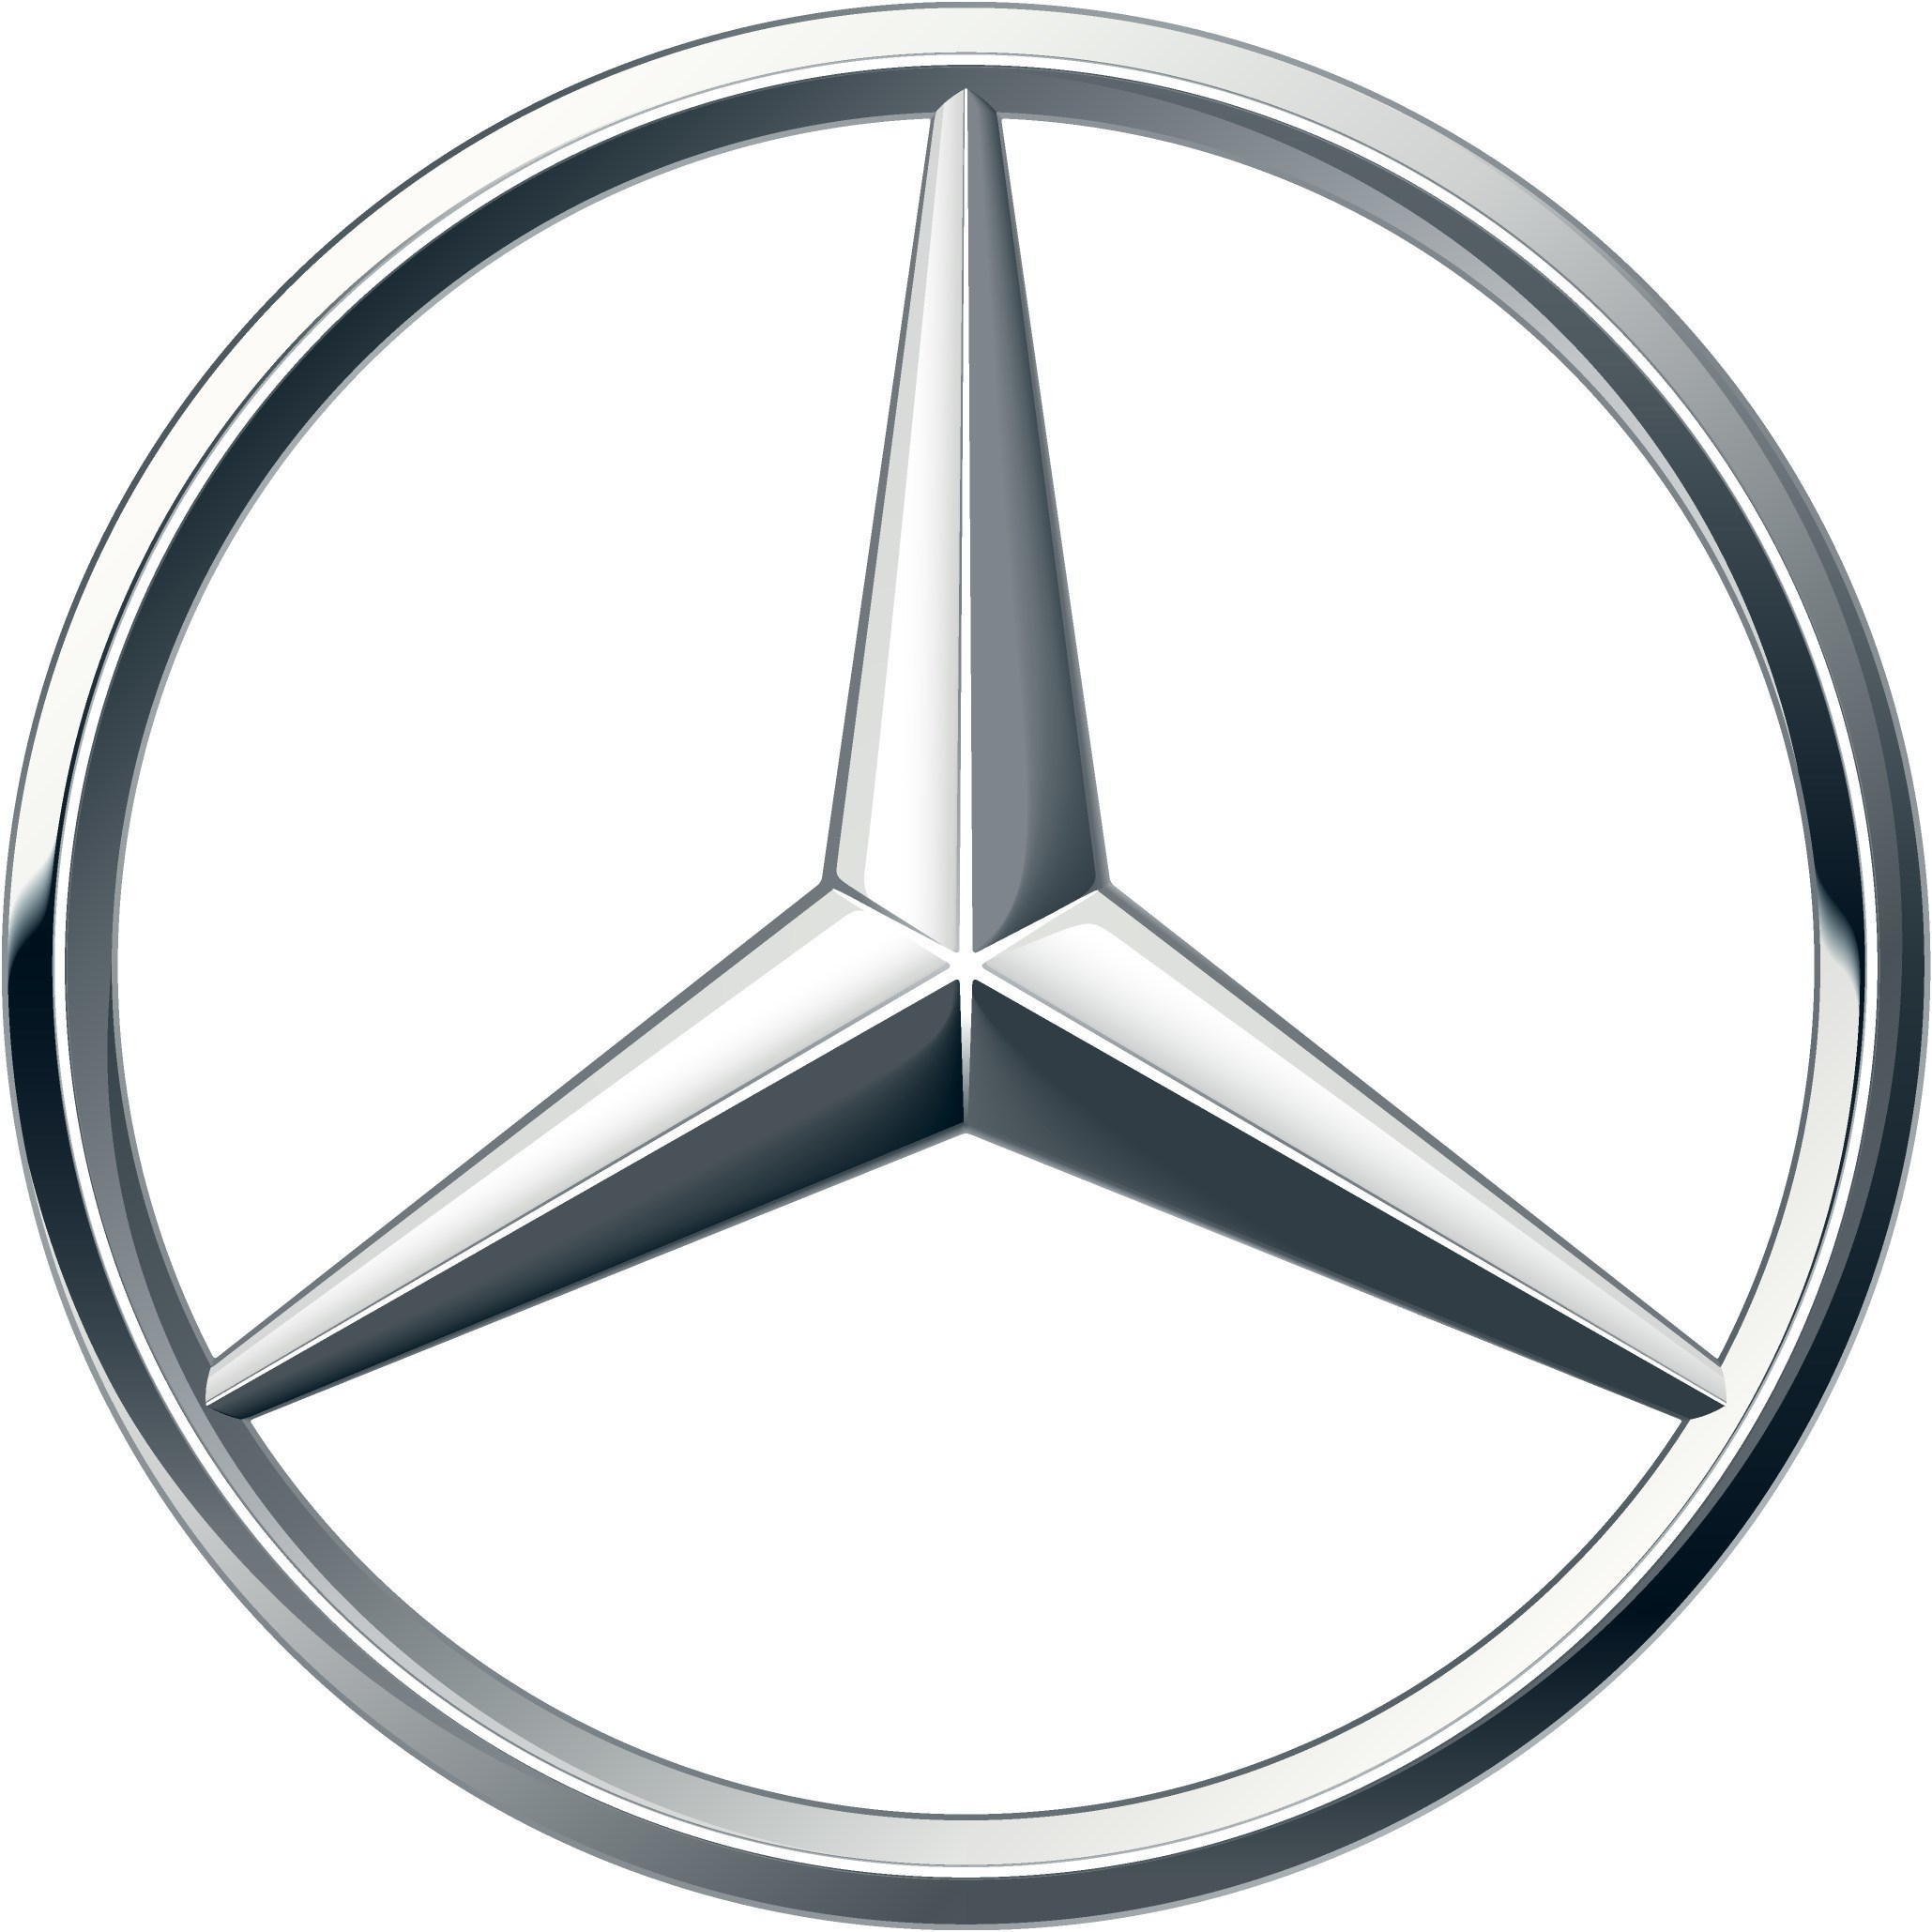 Mercedes Benz Usa Reports Best Year Ever With 2016 Sales